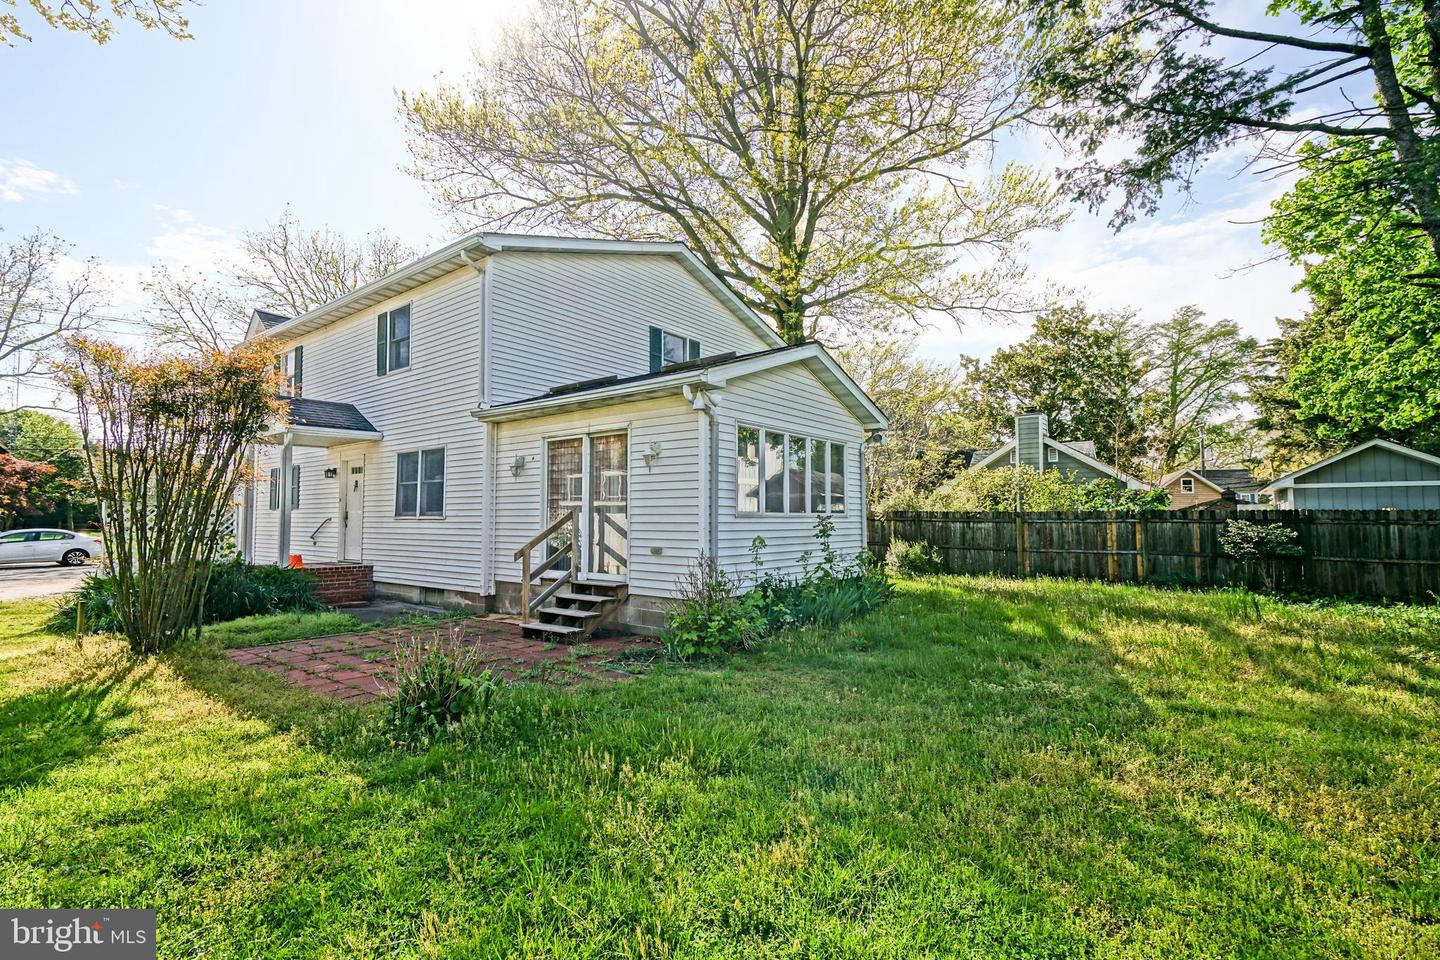 DESU139220-301674675046-2019-07-19-15-20-07 111 Madison Ave | Lewes, DE Real Estate For Sale | MLS# Desu139220  - Lee Ann Group